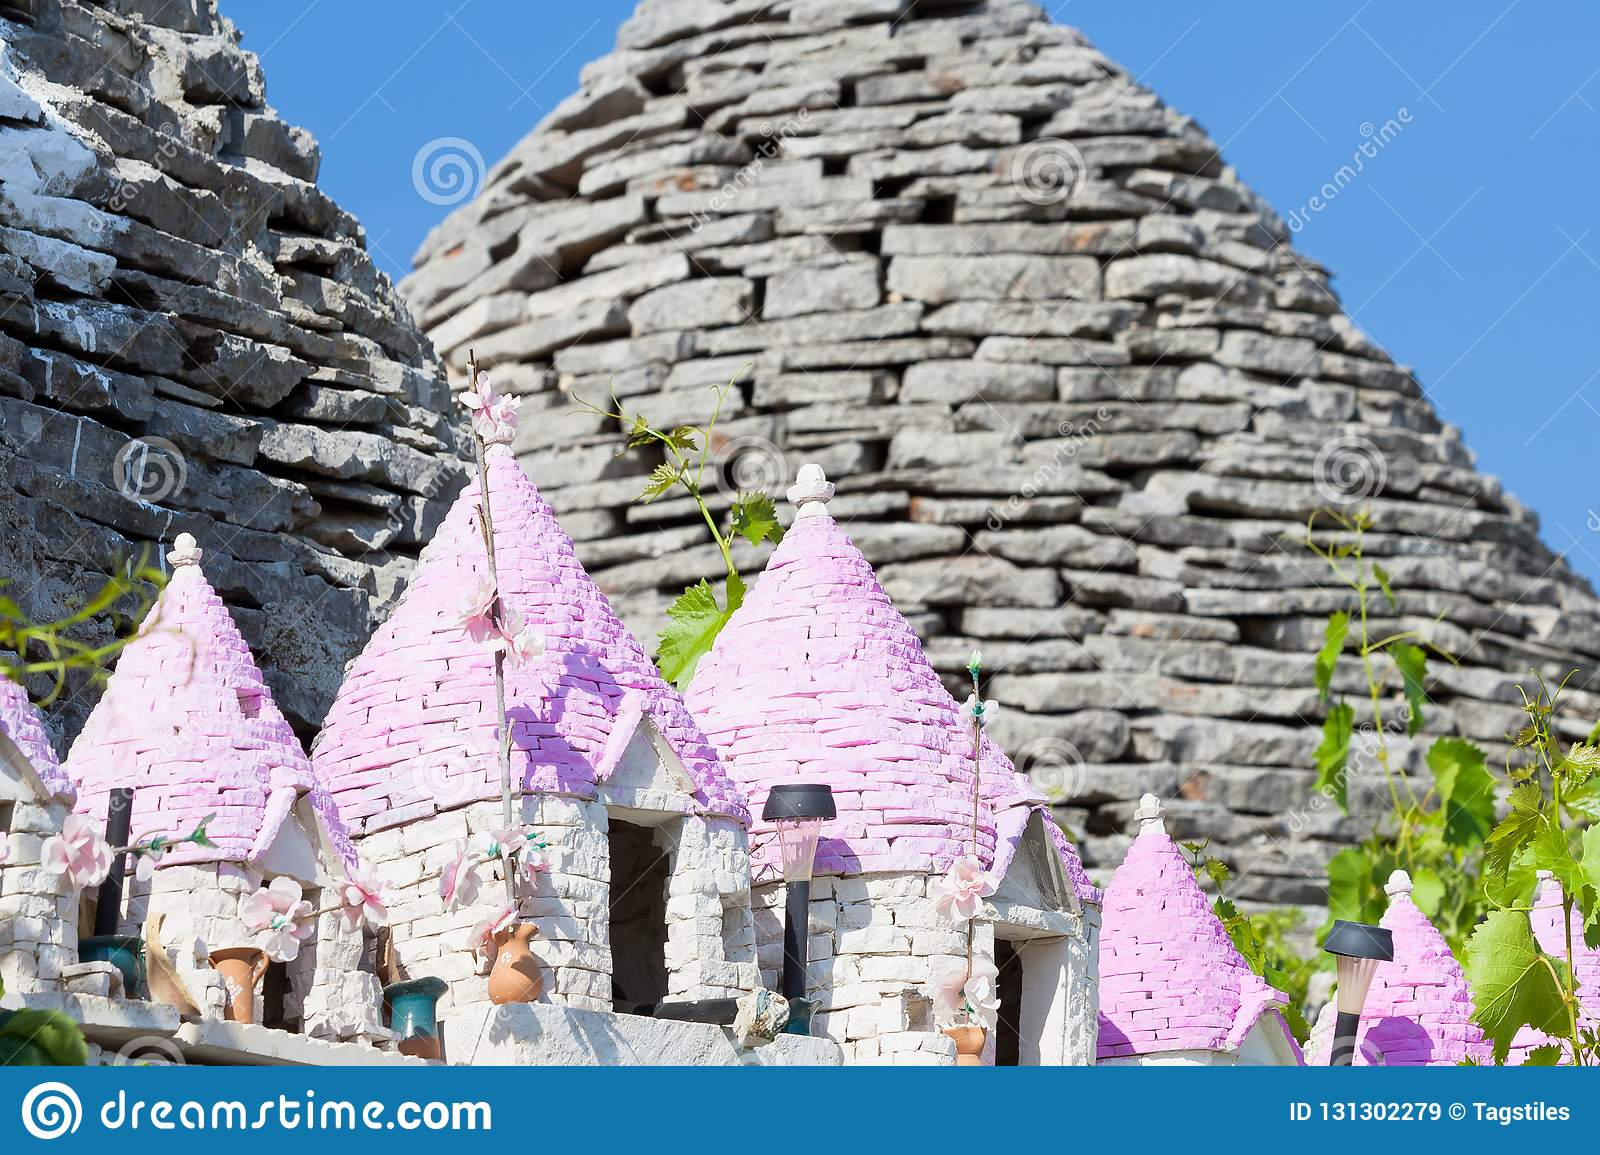 Alberobello, Apulia - Miniatures of Trulli with pink rooftops